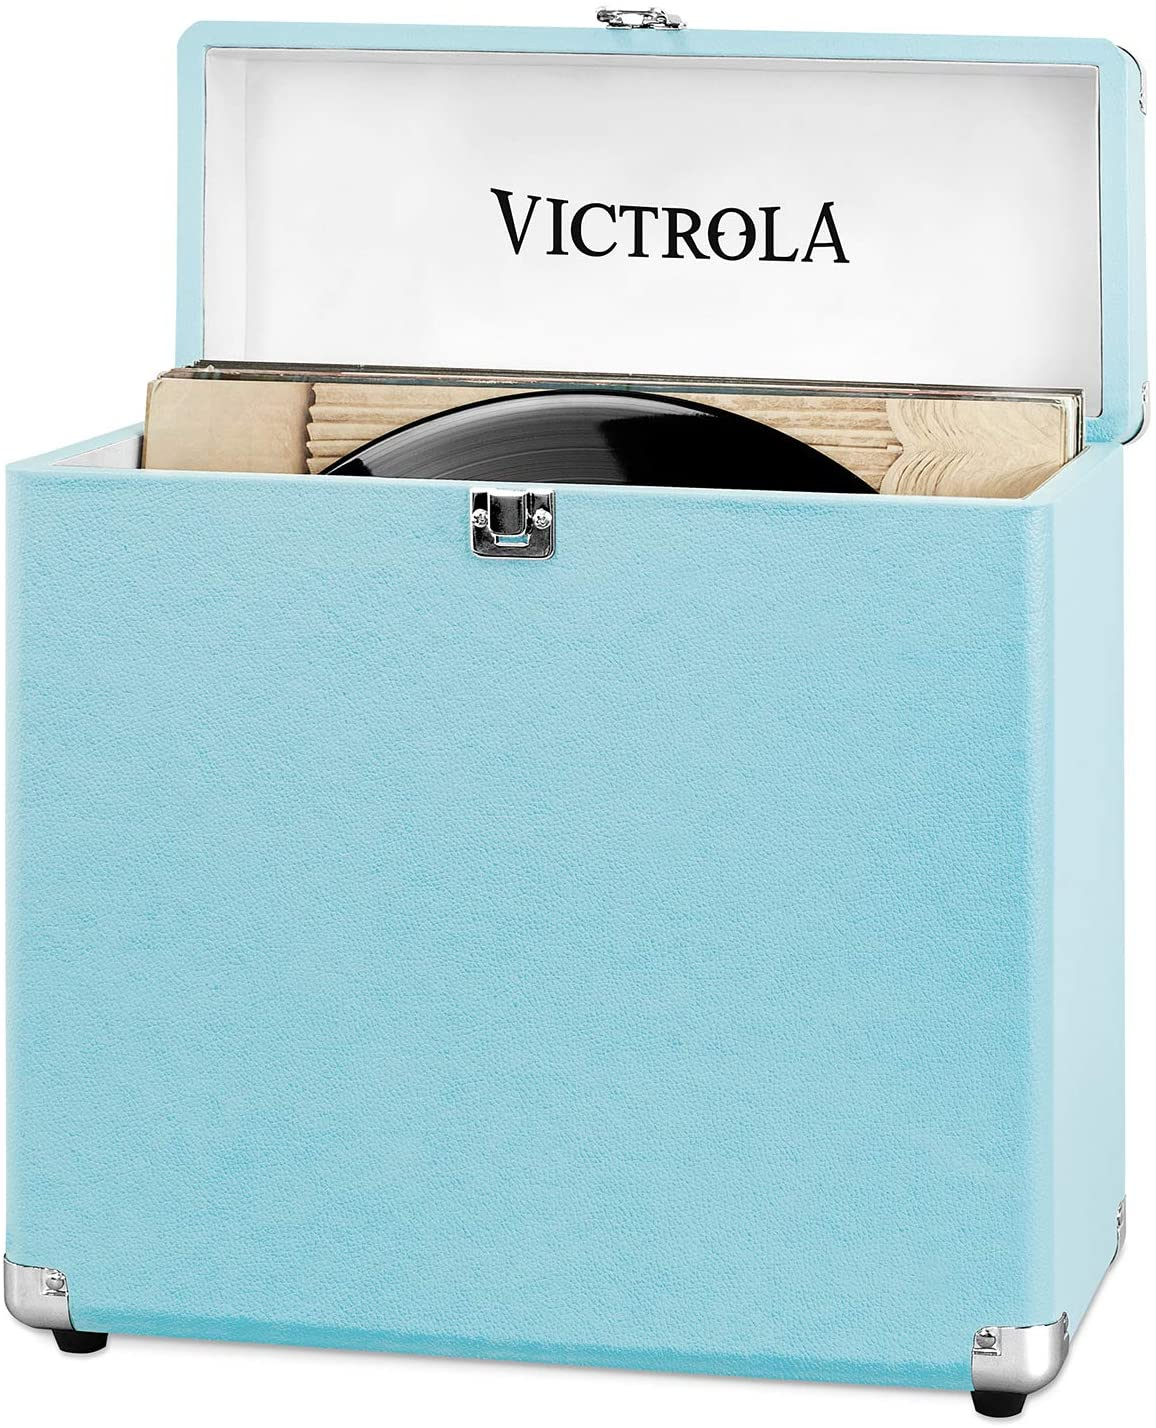 Victrola Portable Vinyl Storage Case - Turquoise [Accessories]